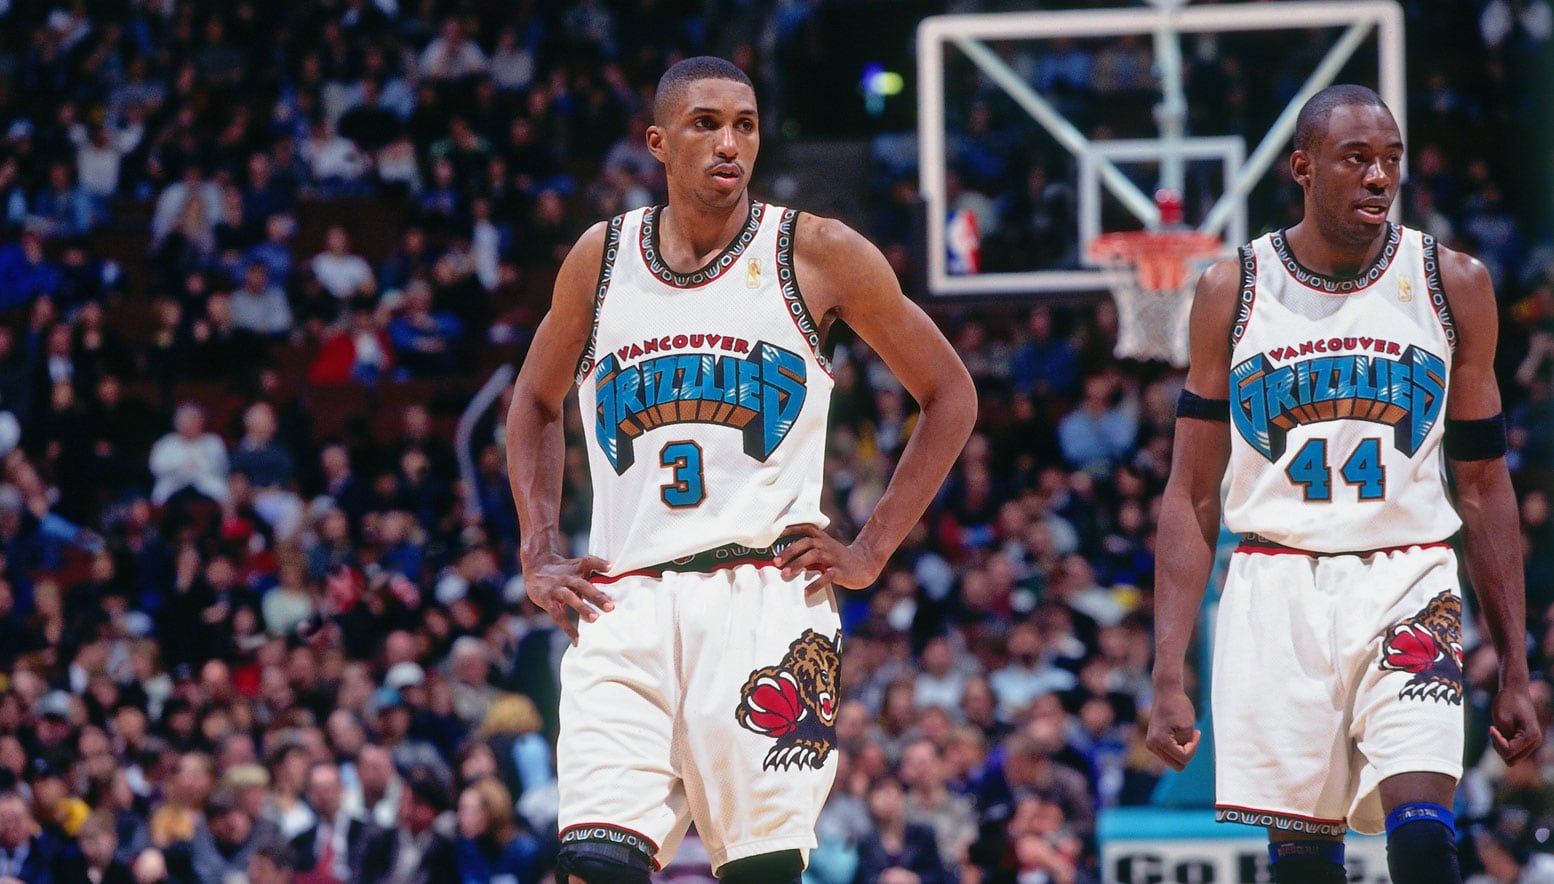 Shareef Abdur-Rahim and Roy Rogers